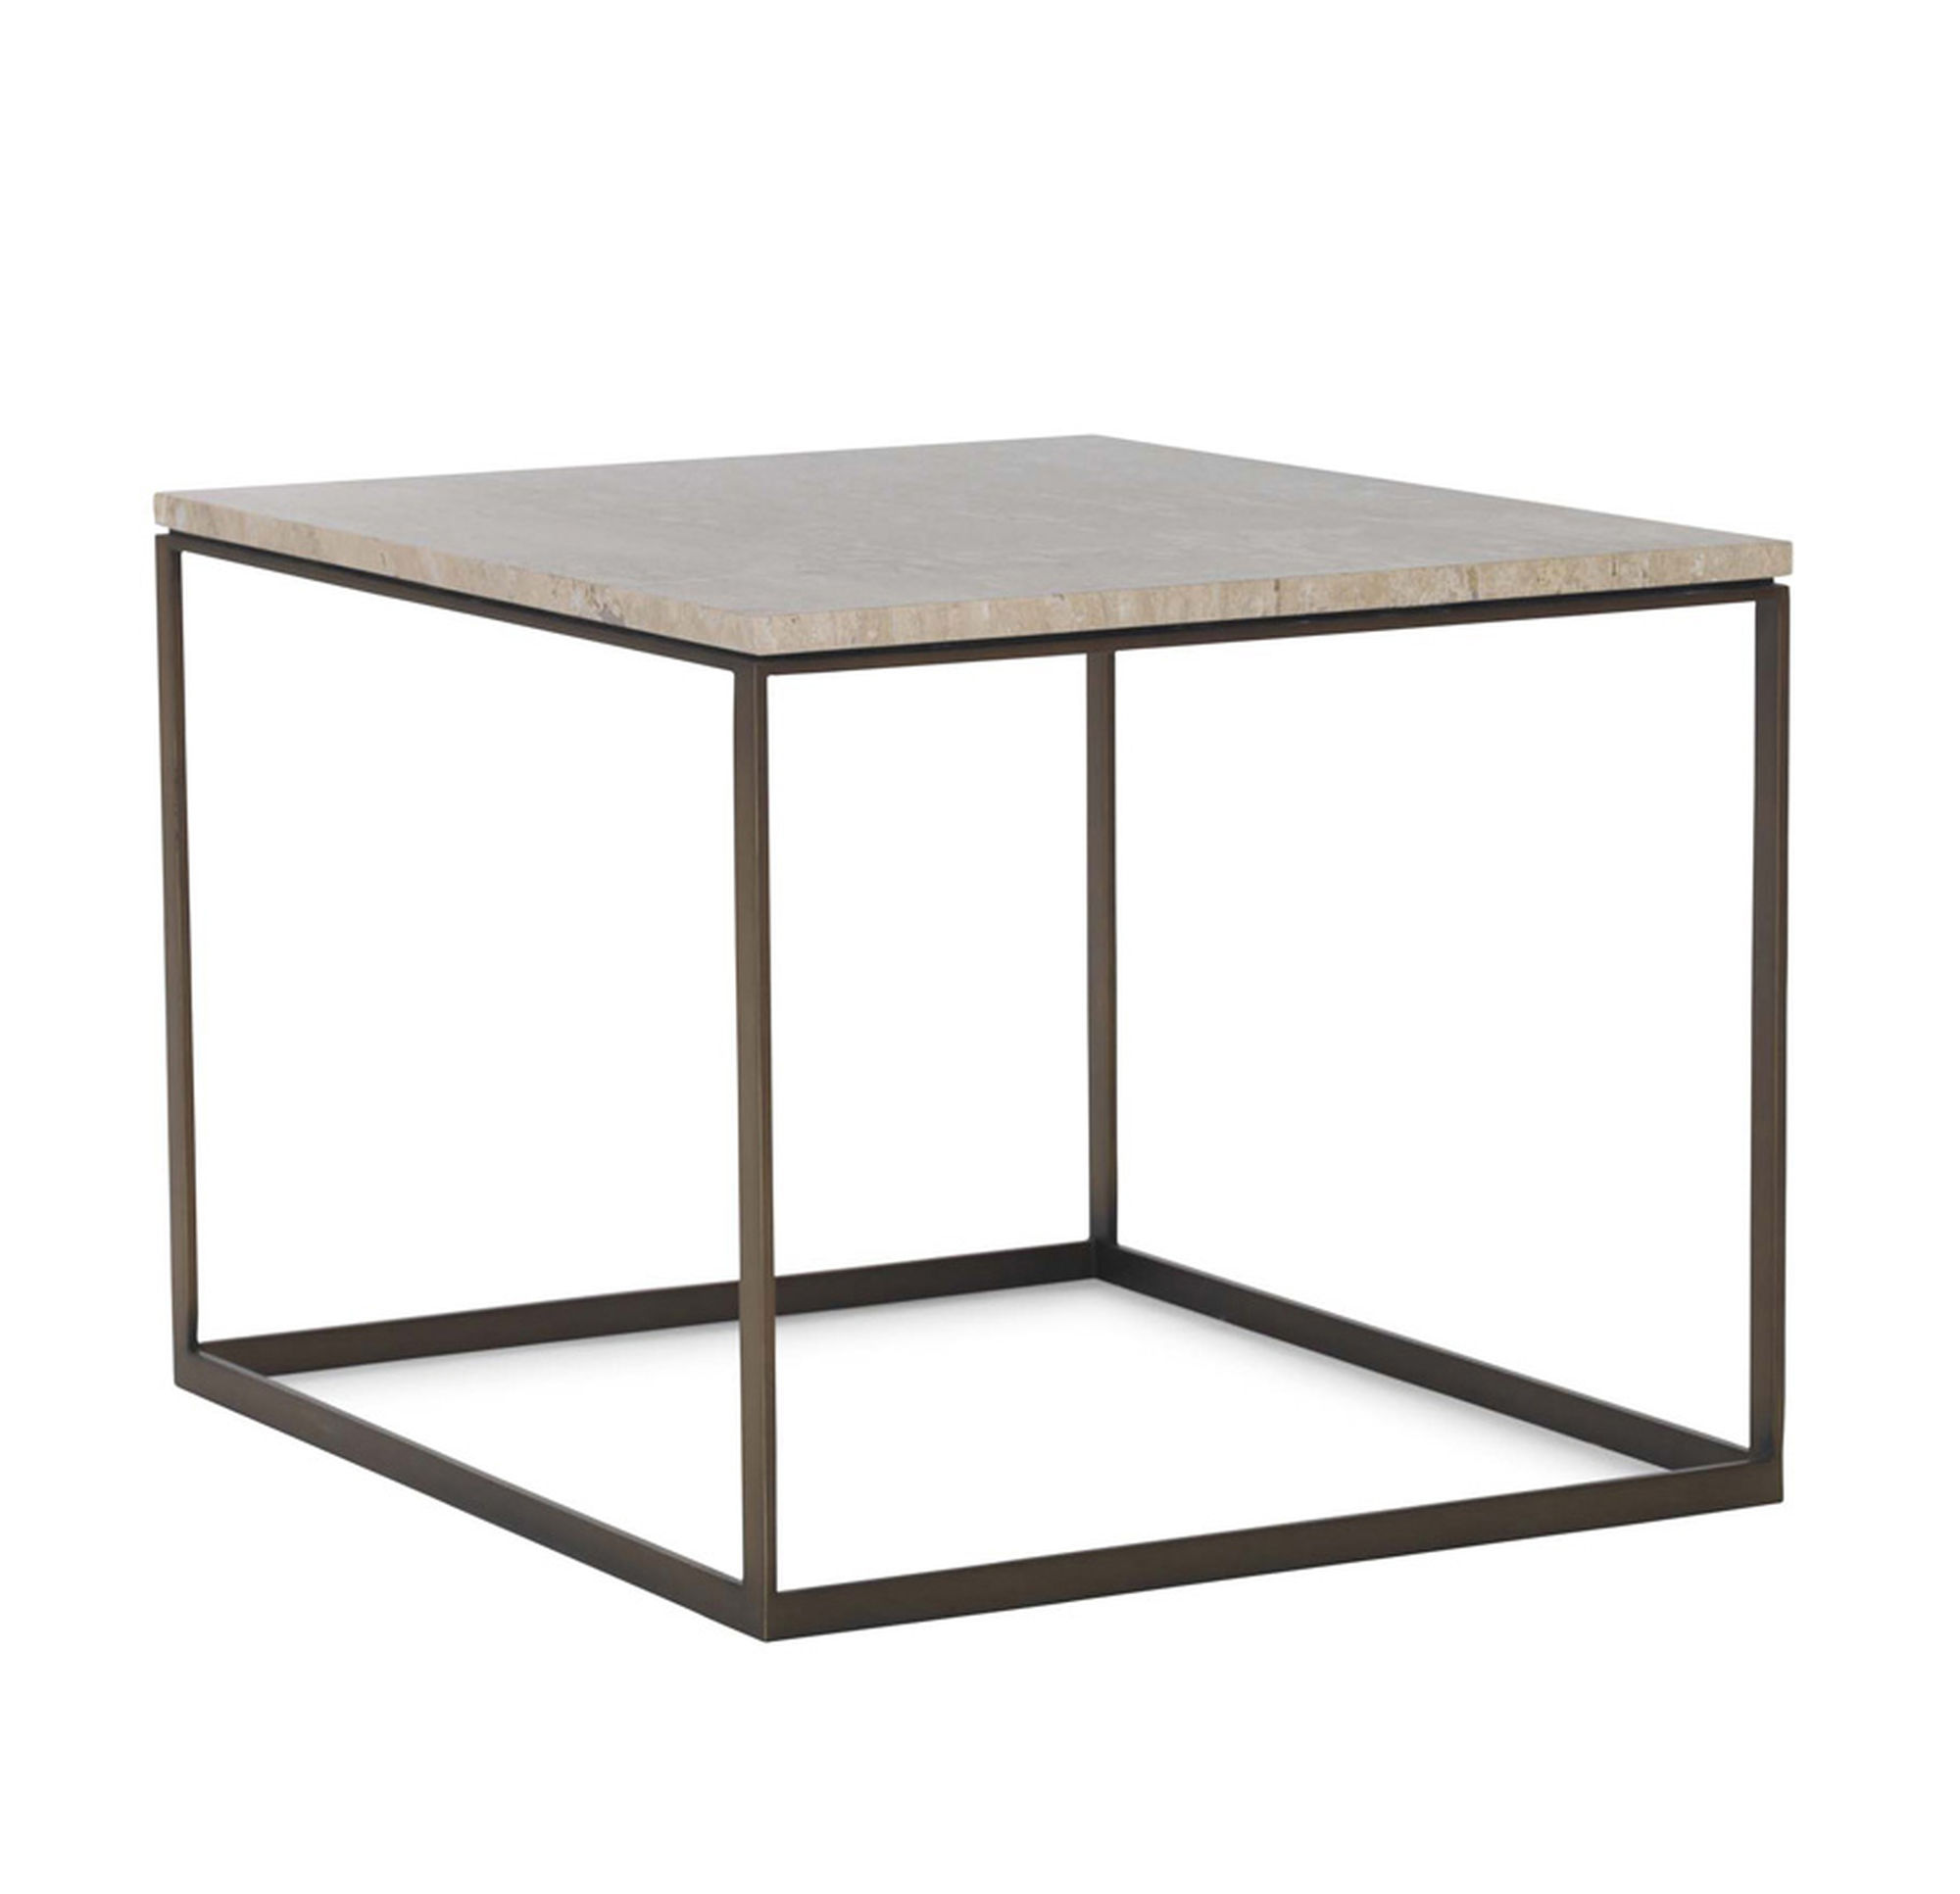 allure side table stb hero accent collections outside covers ikea lounge gold metal target curtain rods high round marble top breakfast matching lamps small patio tables sofa lamp